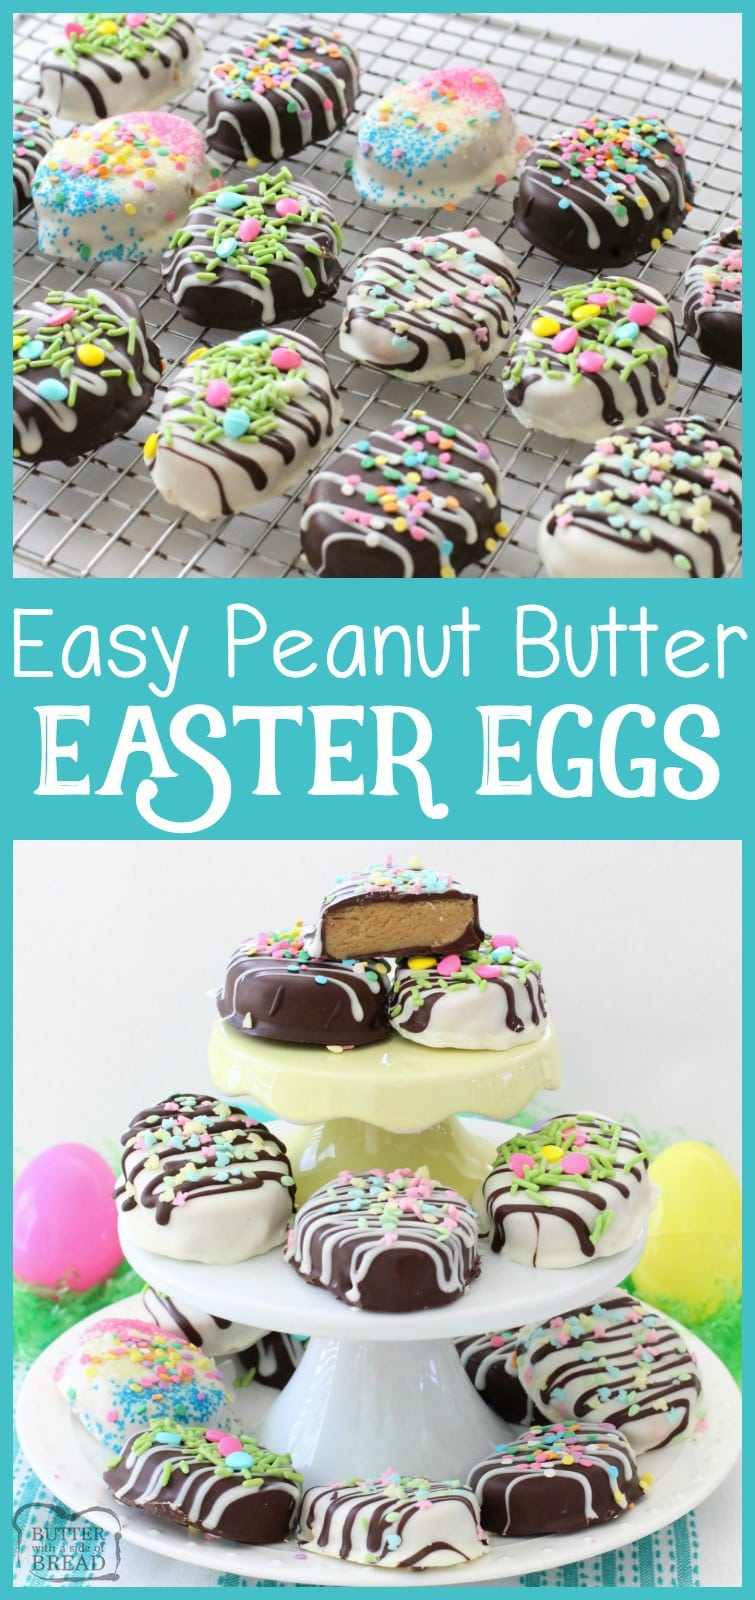 Easy recipe for Peanut Butter Easter Eggs with a soft, sweet filling! Simple, cute & festive homemade treat. Butter With A Side of Bread